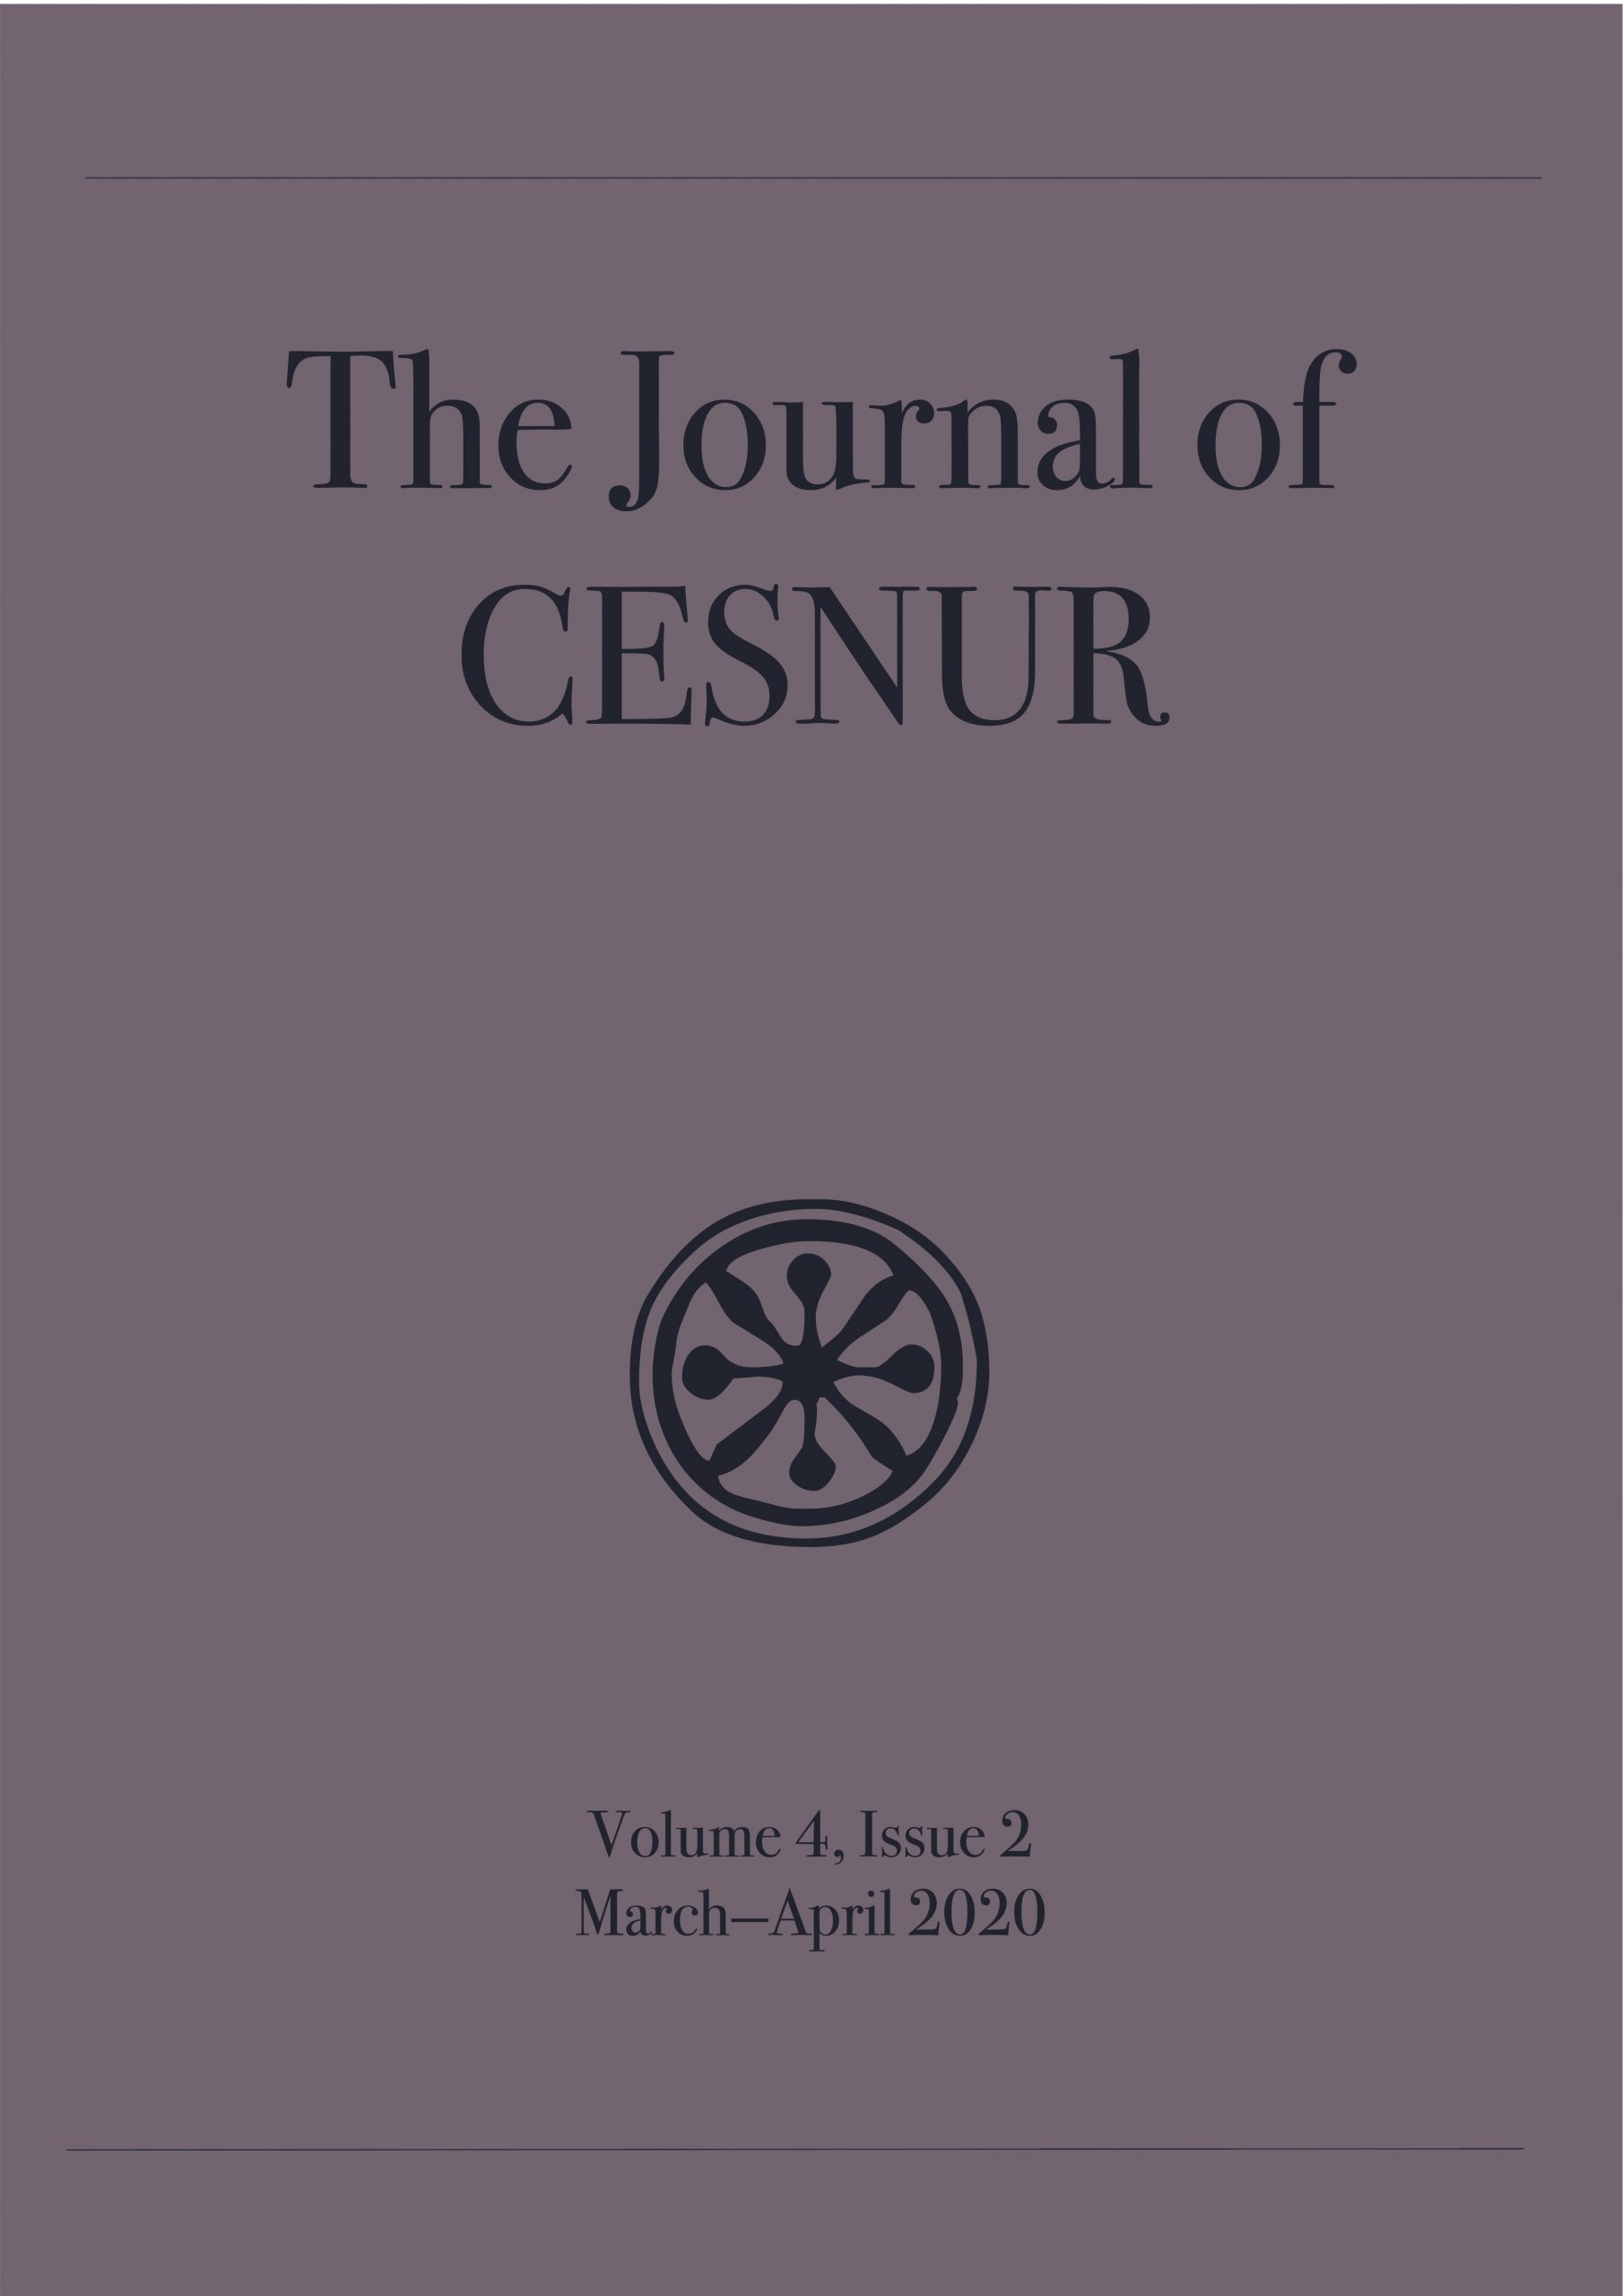 The Journal of Cesnur Volume 4 Issue 2 cover